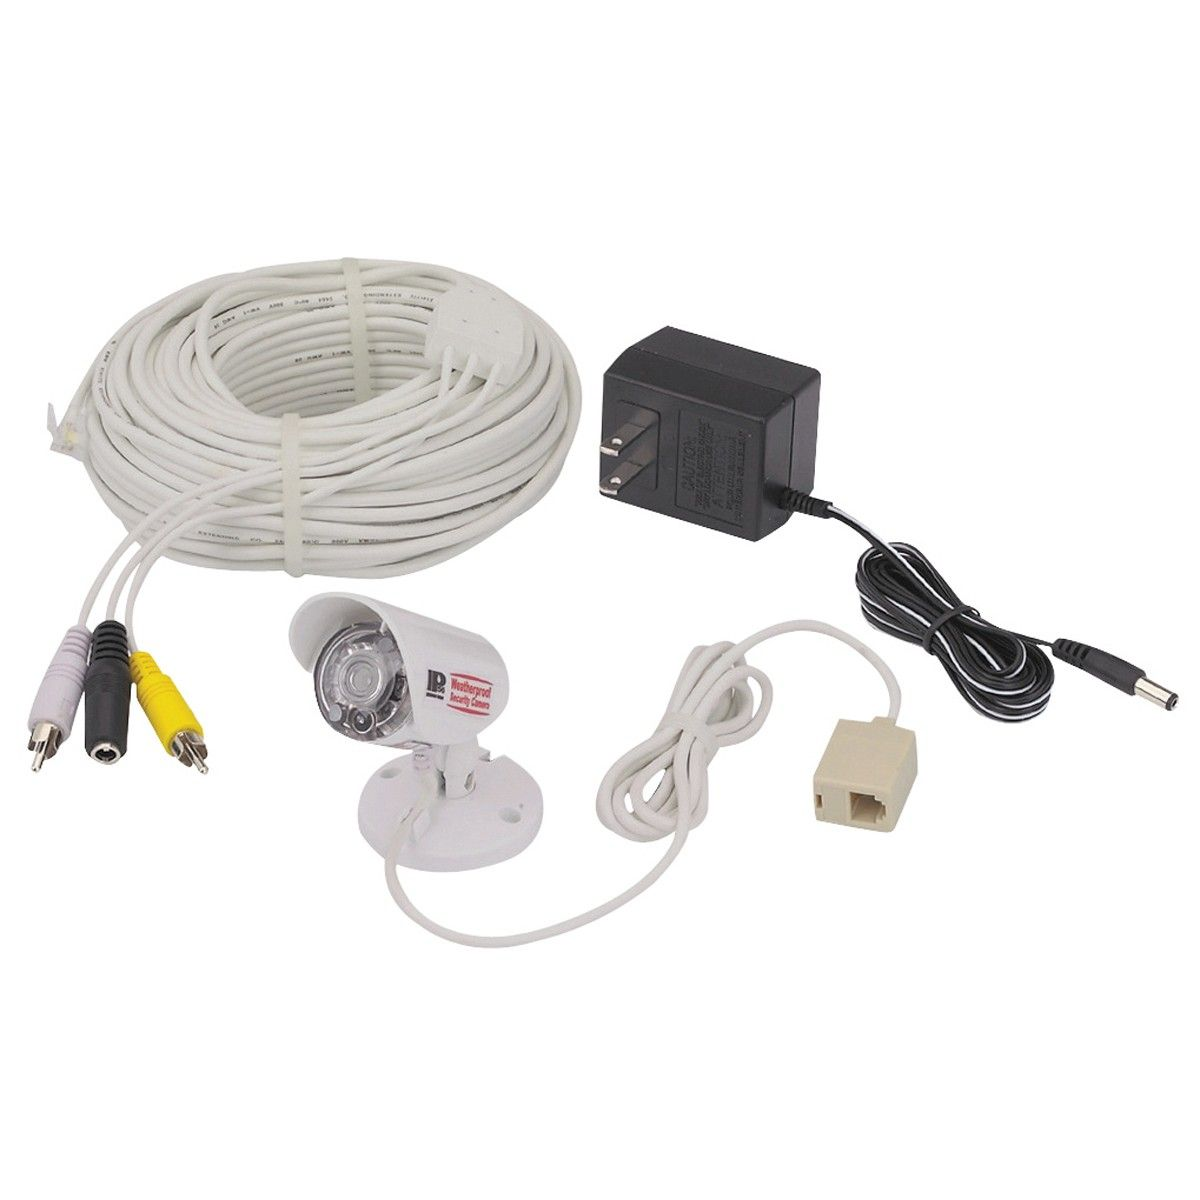 12b106b23c96b31c51c98e896bc722eb harbor freight security camera 47546 wiring diagram are you underwater camera wiring diagram at bayanpartner.co